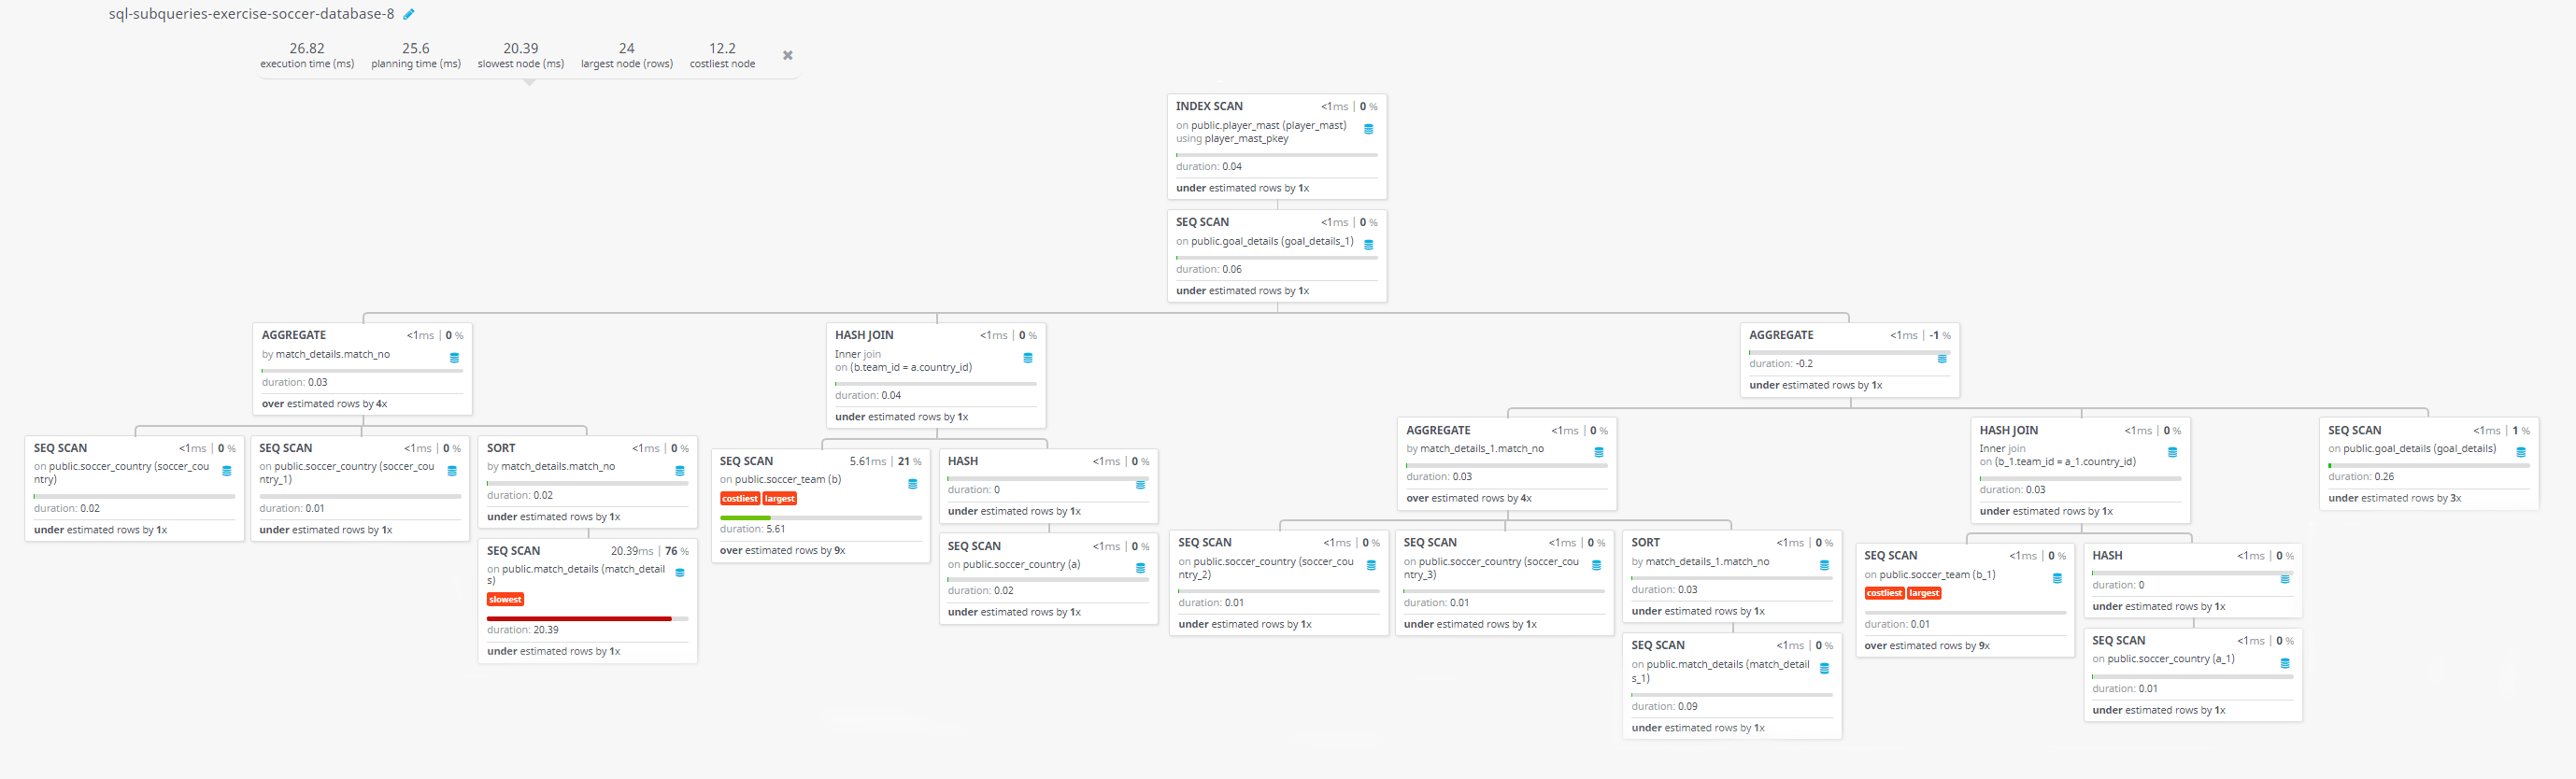 Query visualization of Find the player who scored the last goal for Portugal against Hungary - Duration